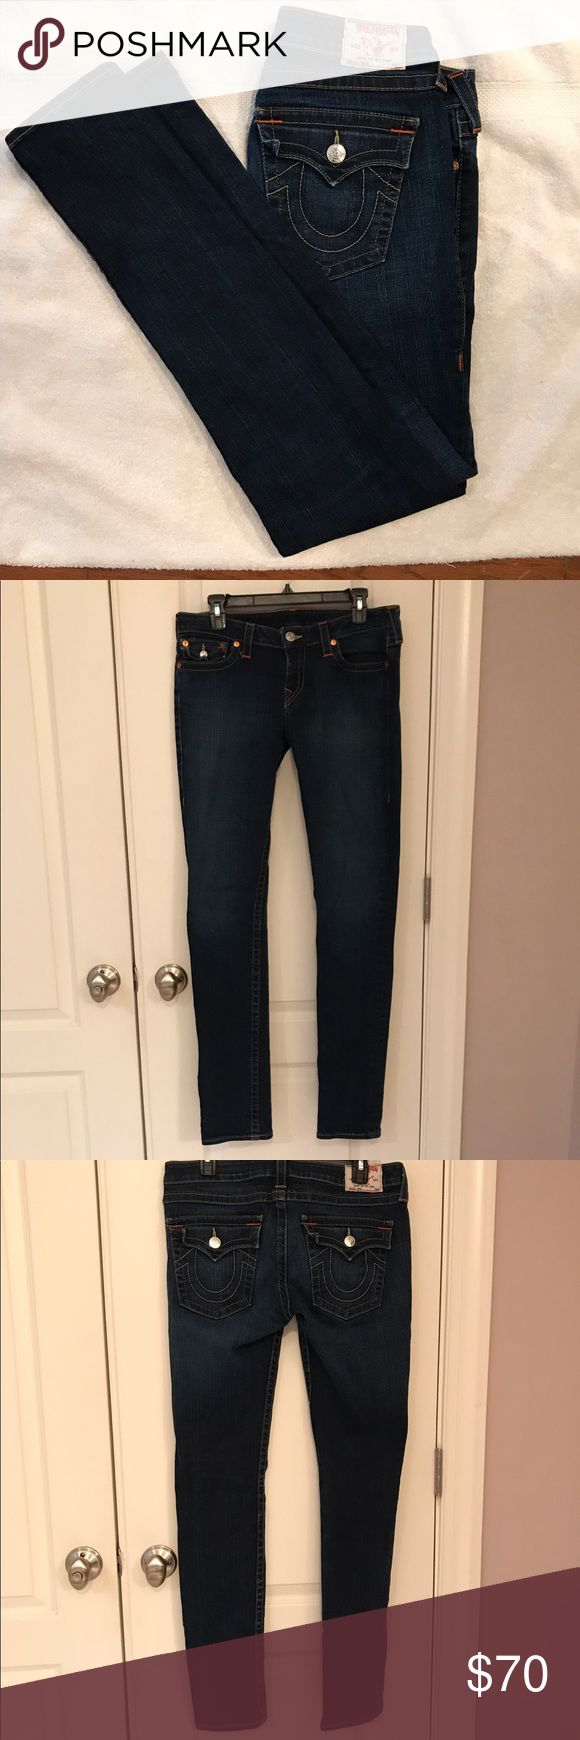 "TRUE RELIGION ""JULIE"" WOMENS DARK WASH JEANS Authentic True Religion ""JULIE"" Skinny dark wash Mid-Rise. Jeans are in excellent pre-owned condition/no rips, clean and smoke free household. True Religion Jeans Skinny"